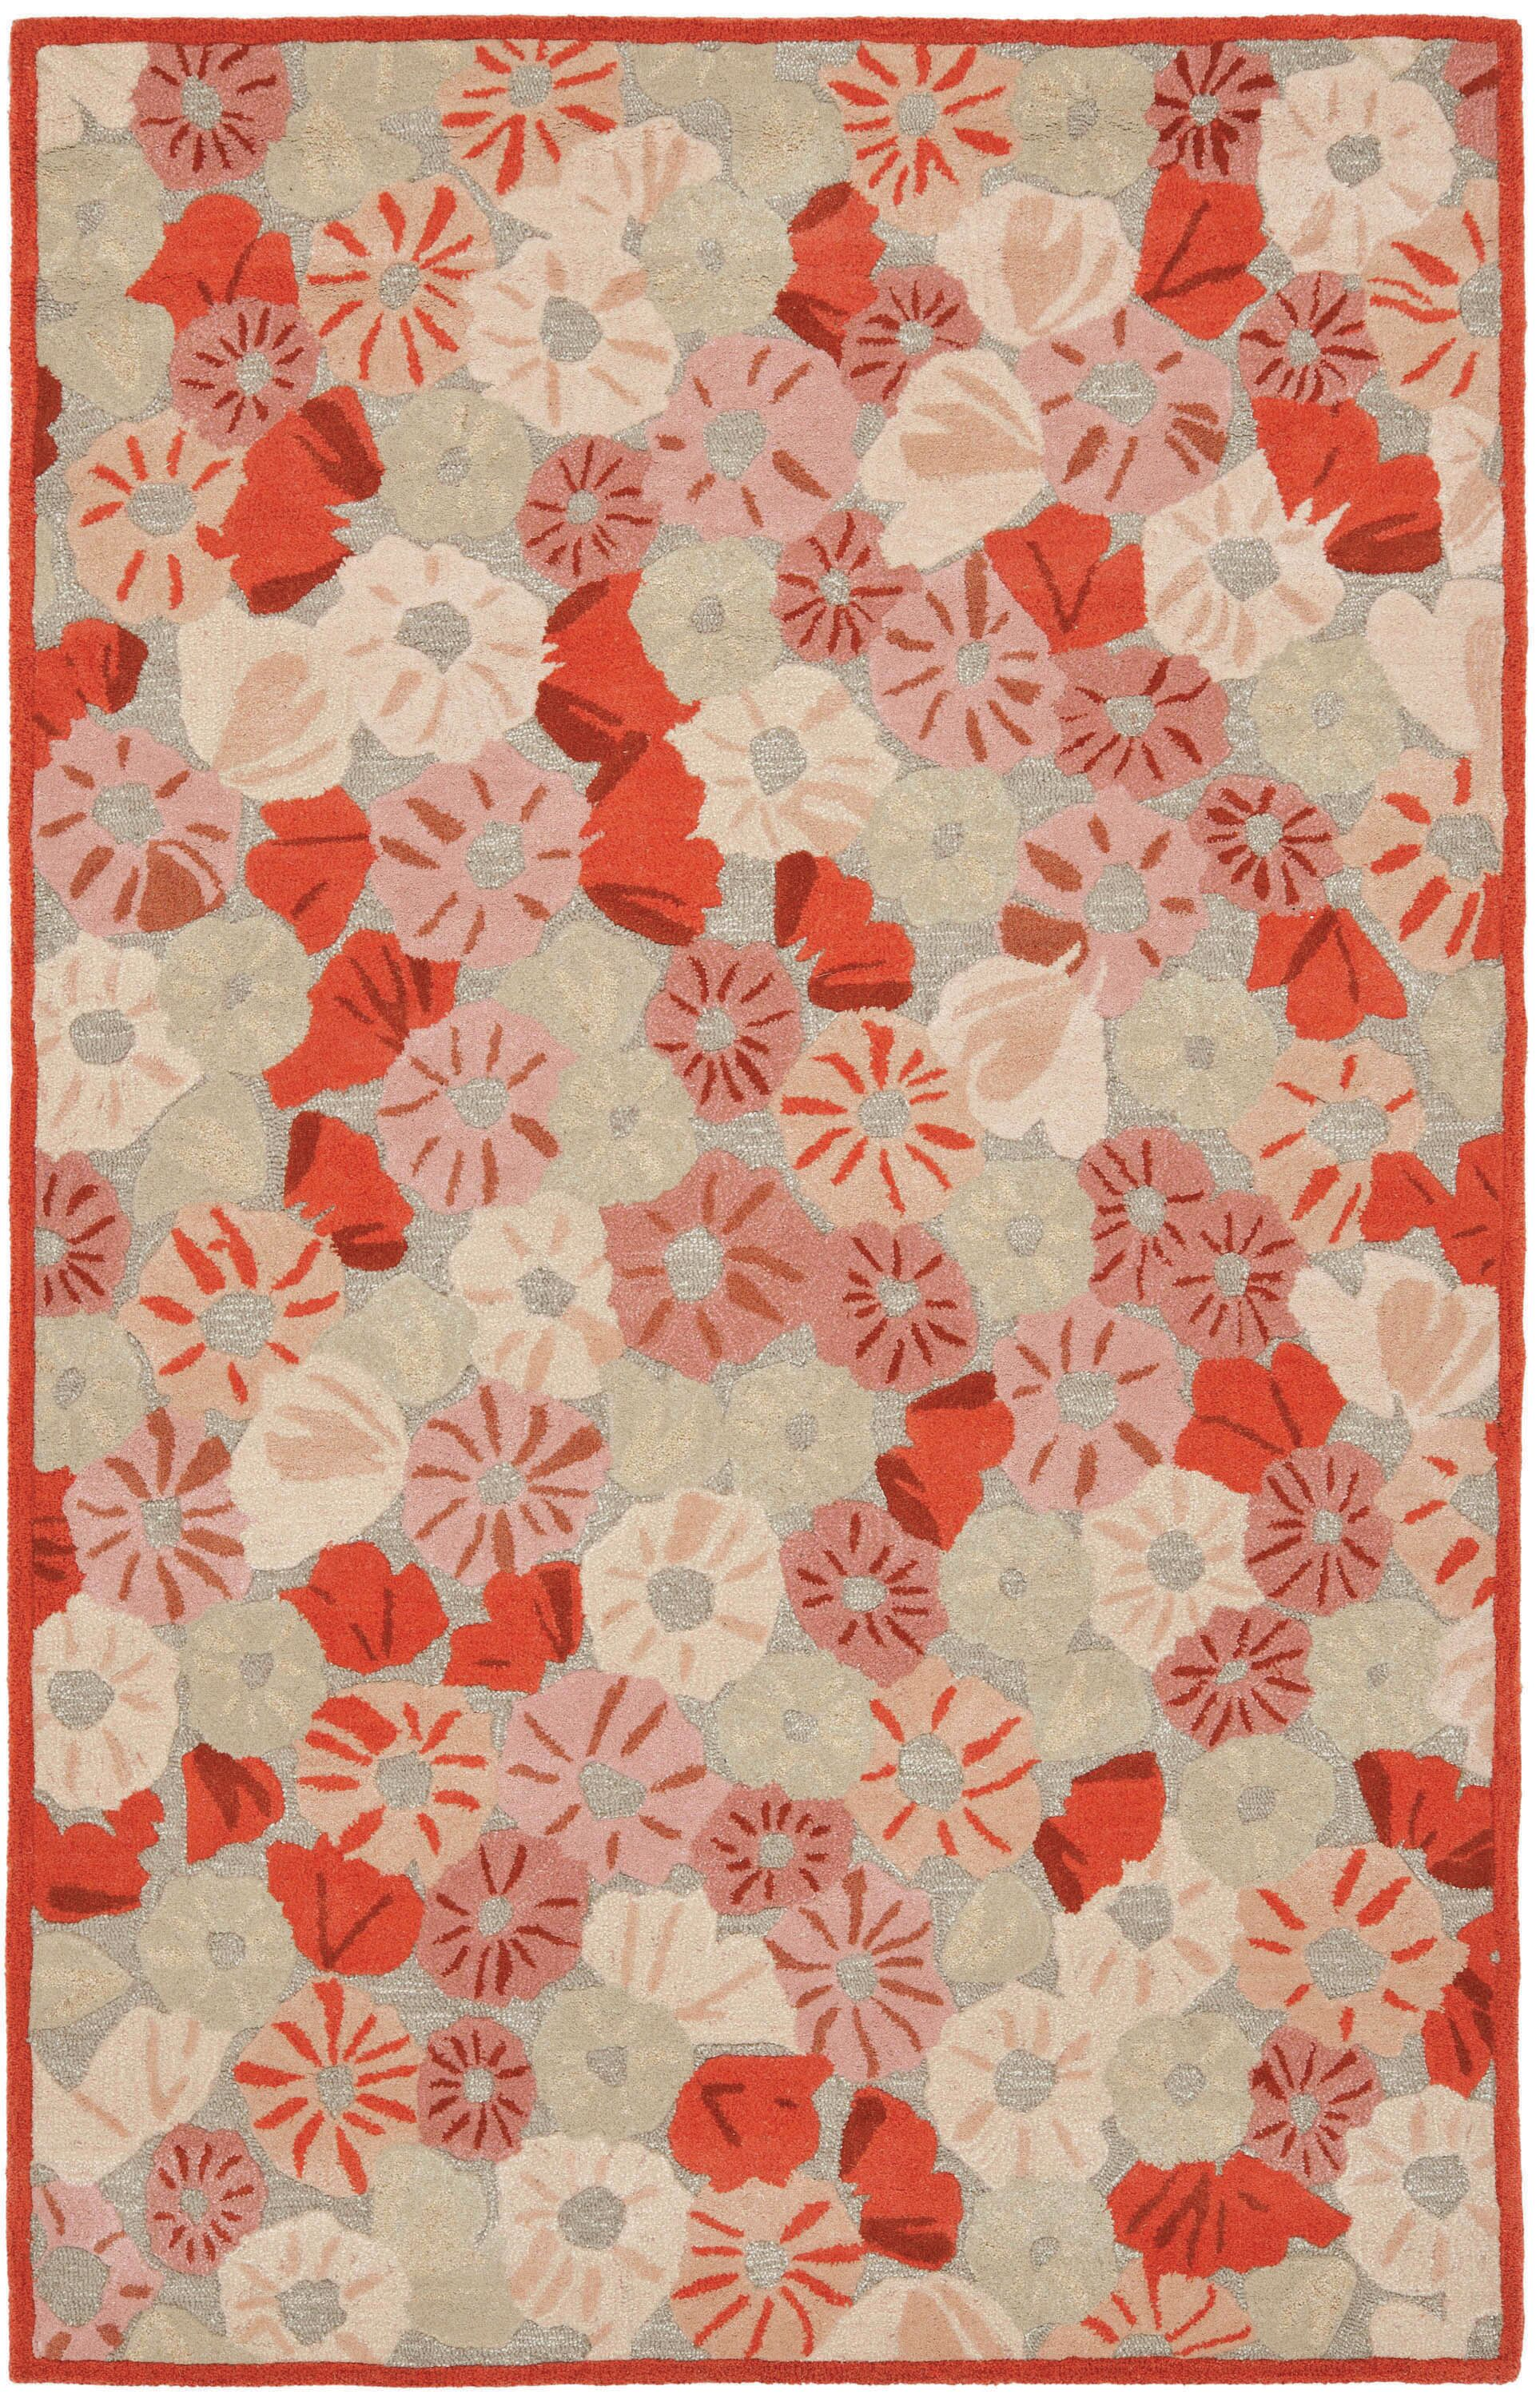 Poppy Field Hand-Tufted Cayenne Red Area Rug Rug Size: Rectangle 4' x 6'